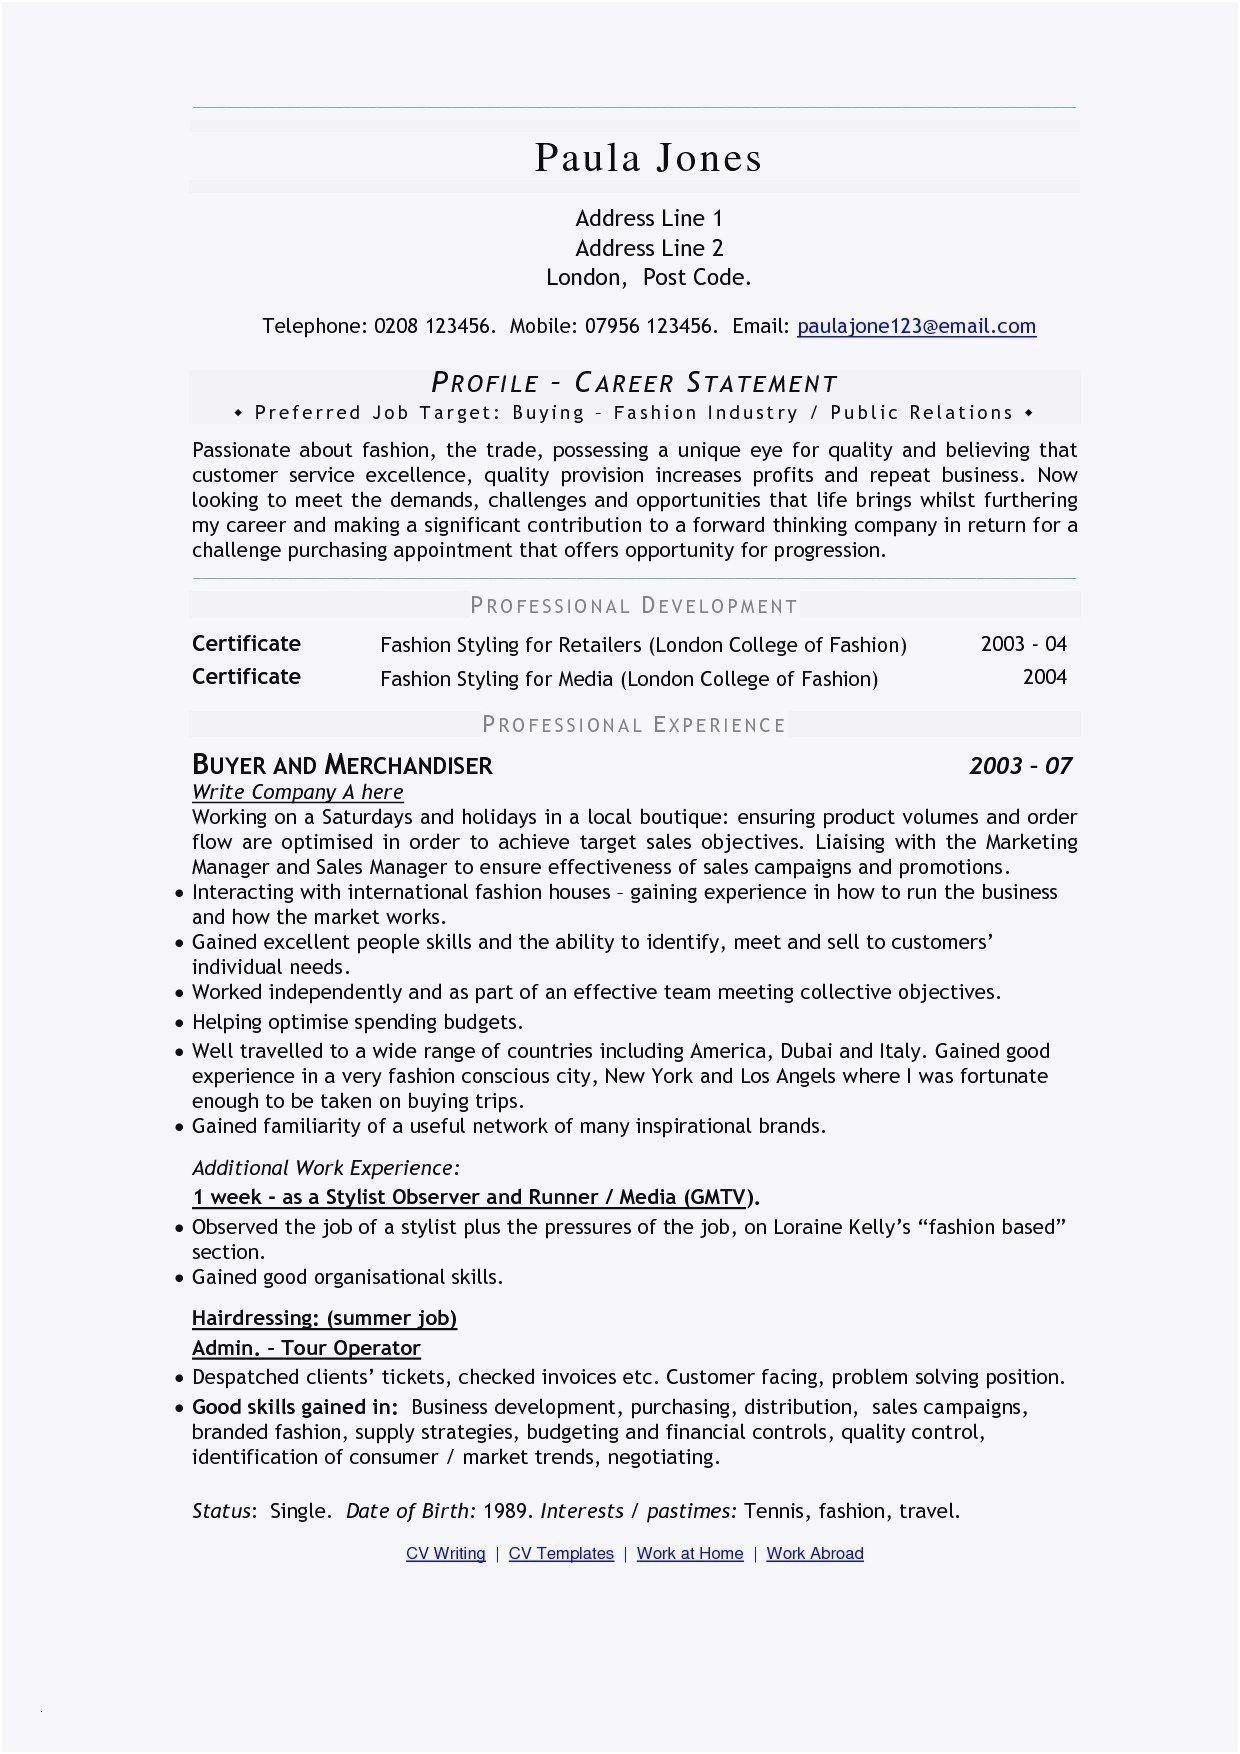 Double Major On Resume Inspirational Resumes For Marketing Jobs